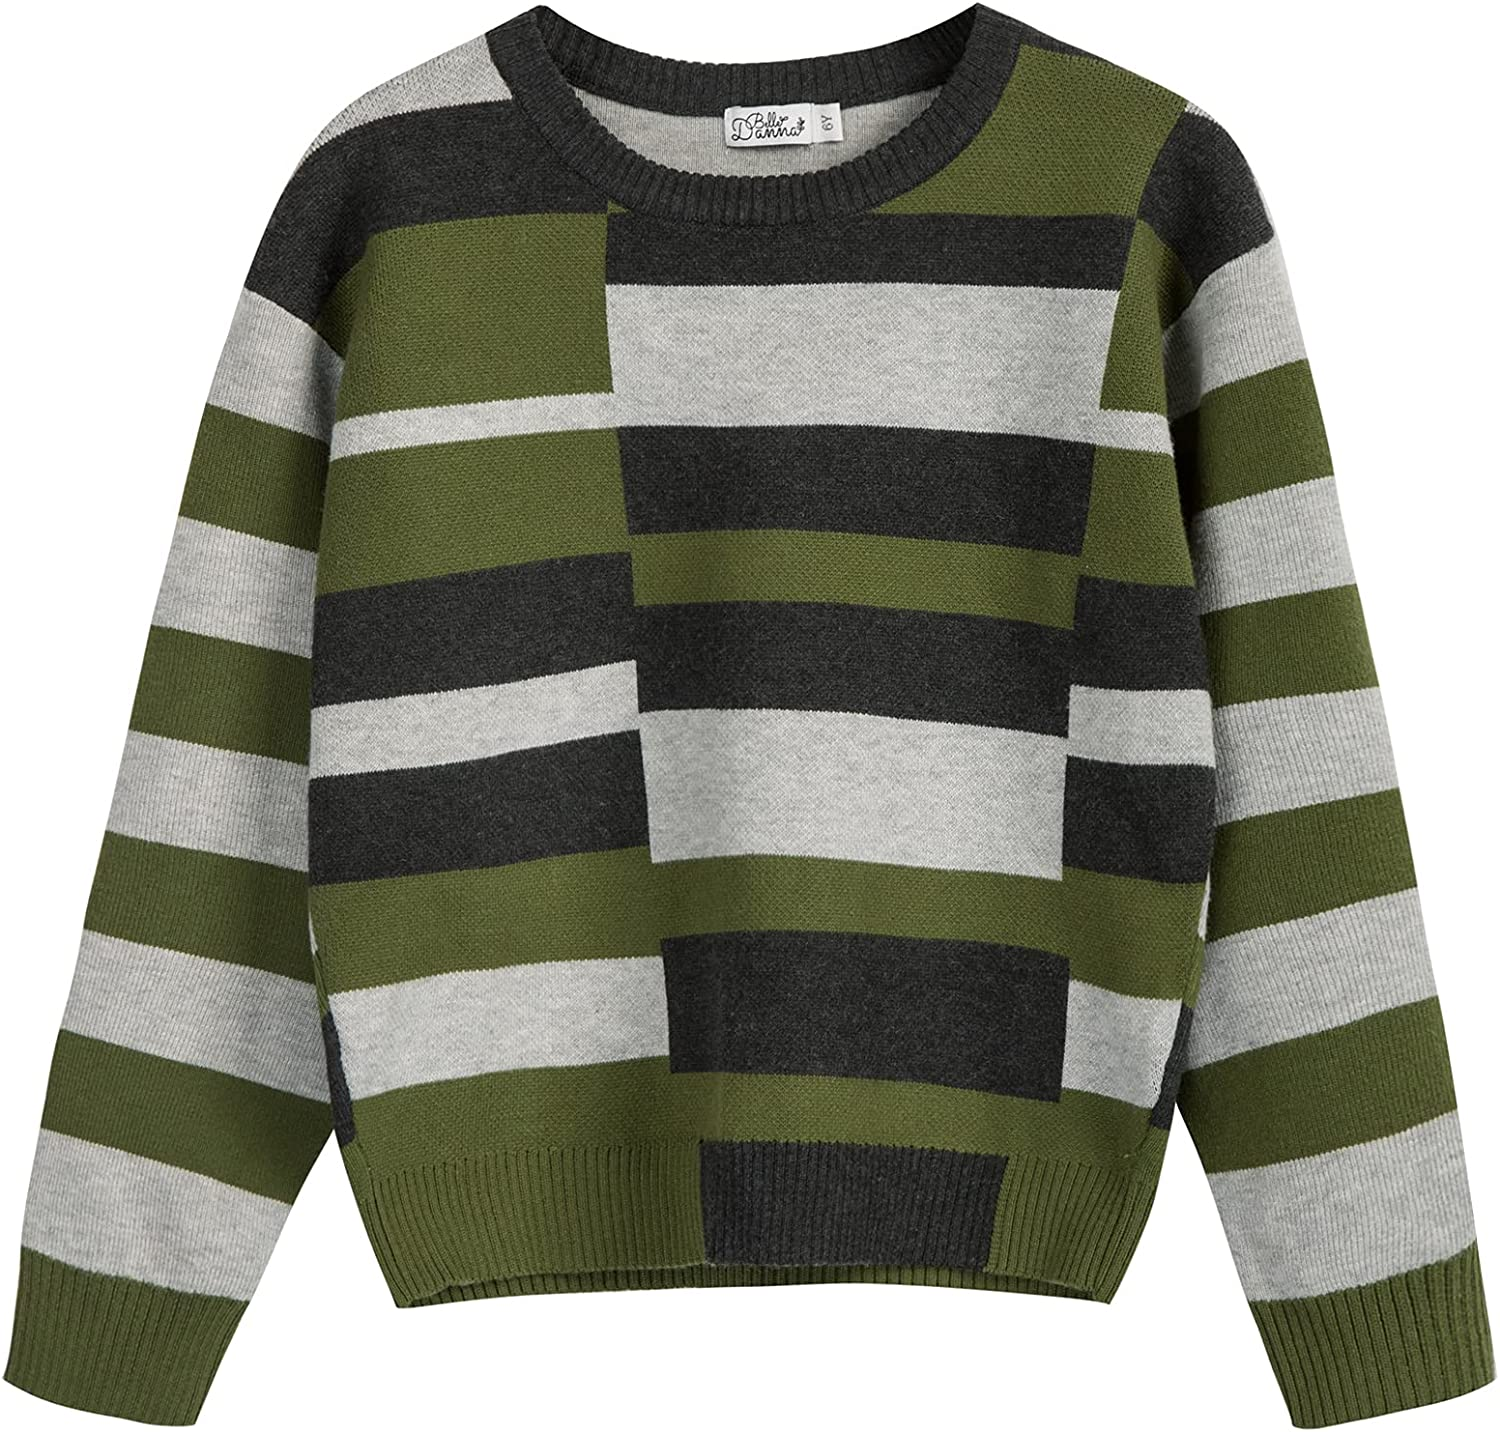 Kids Boys Long Sleeve Striped Sweater Crewneck Knit Pullover Top Size for 5-12